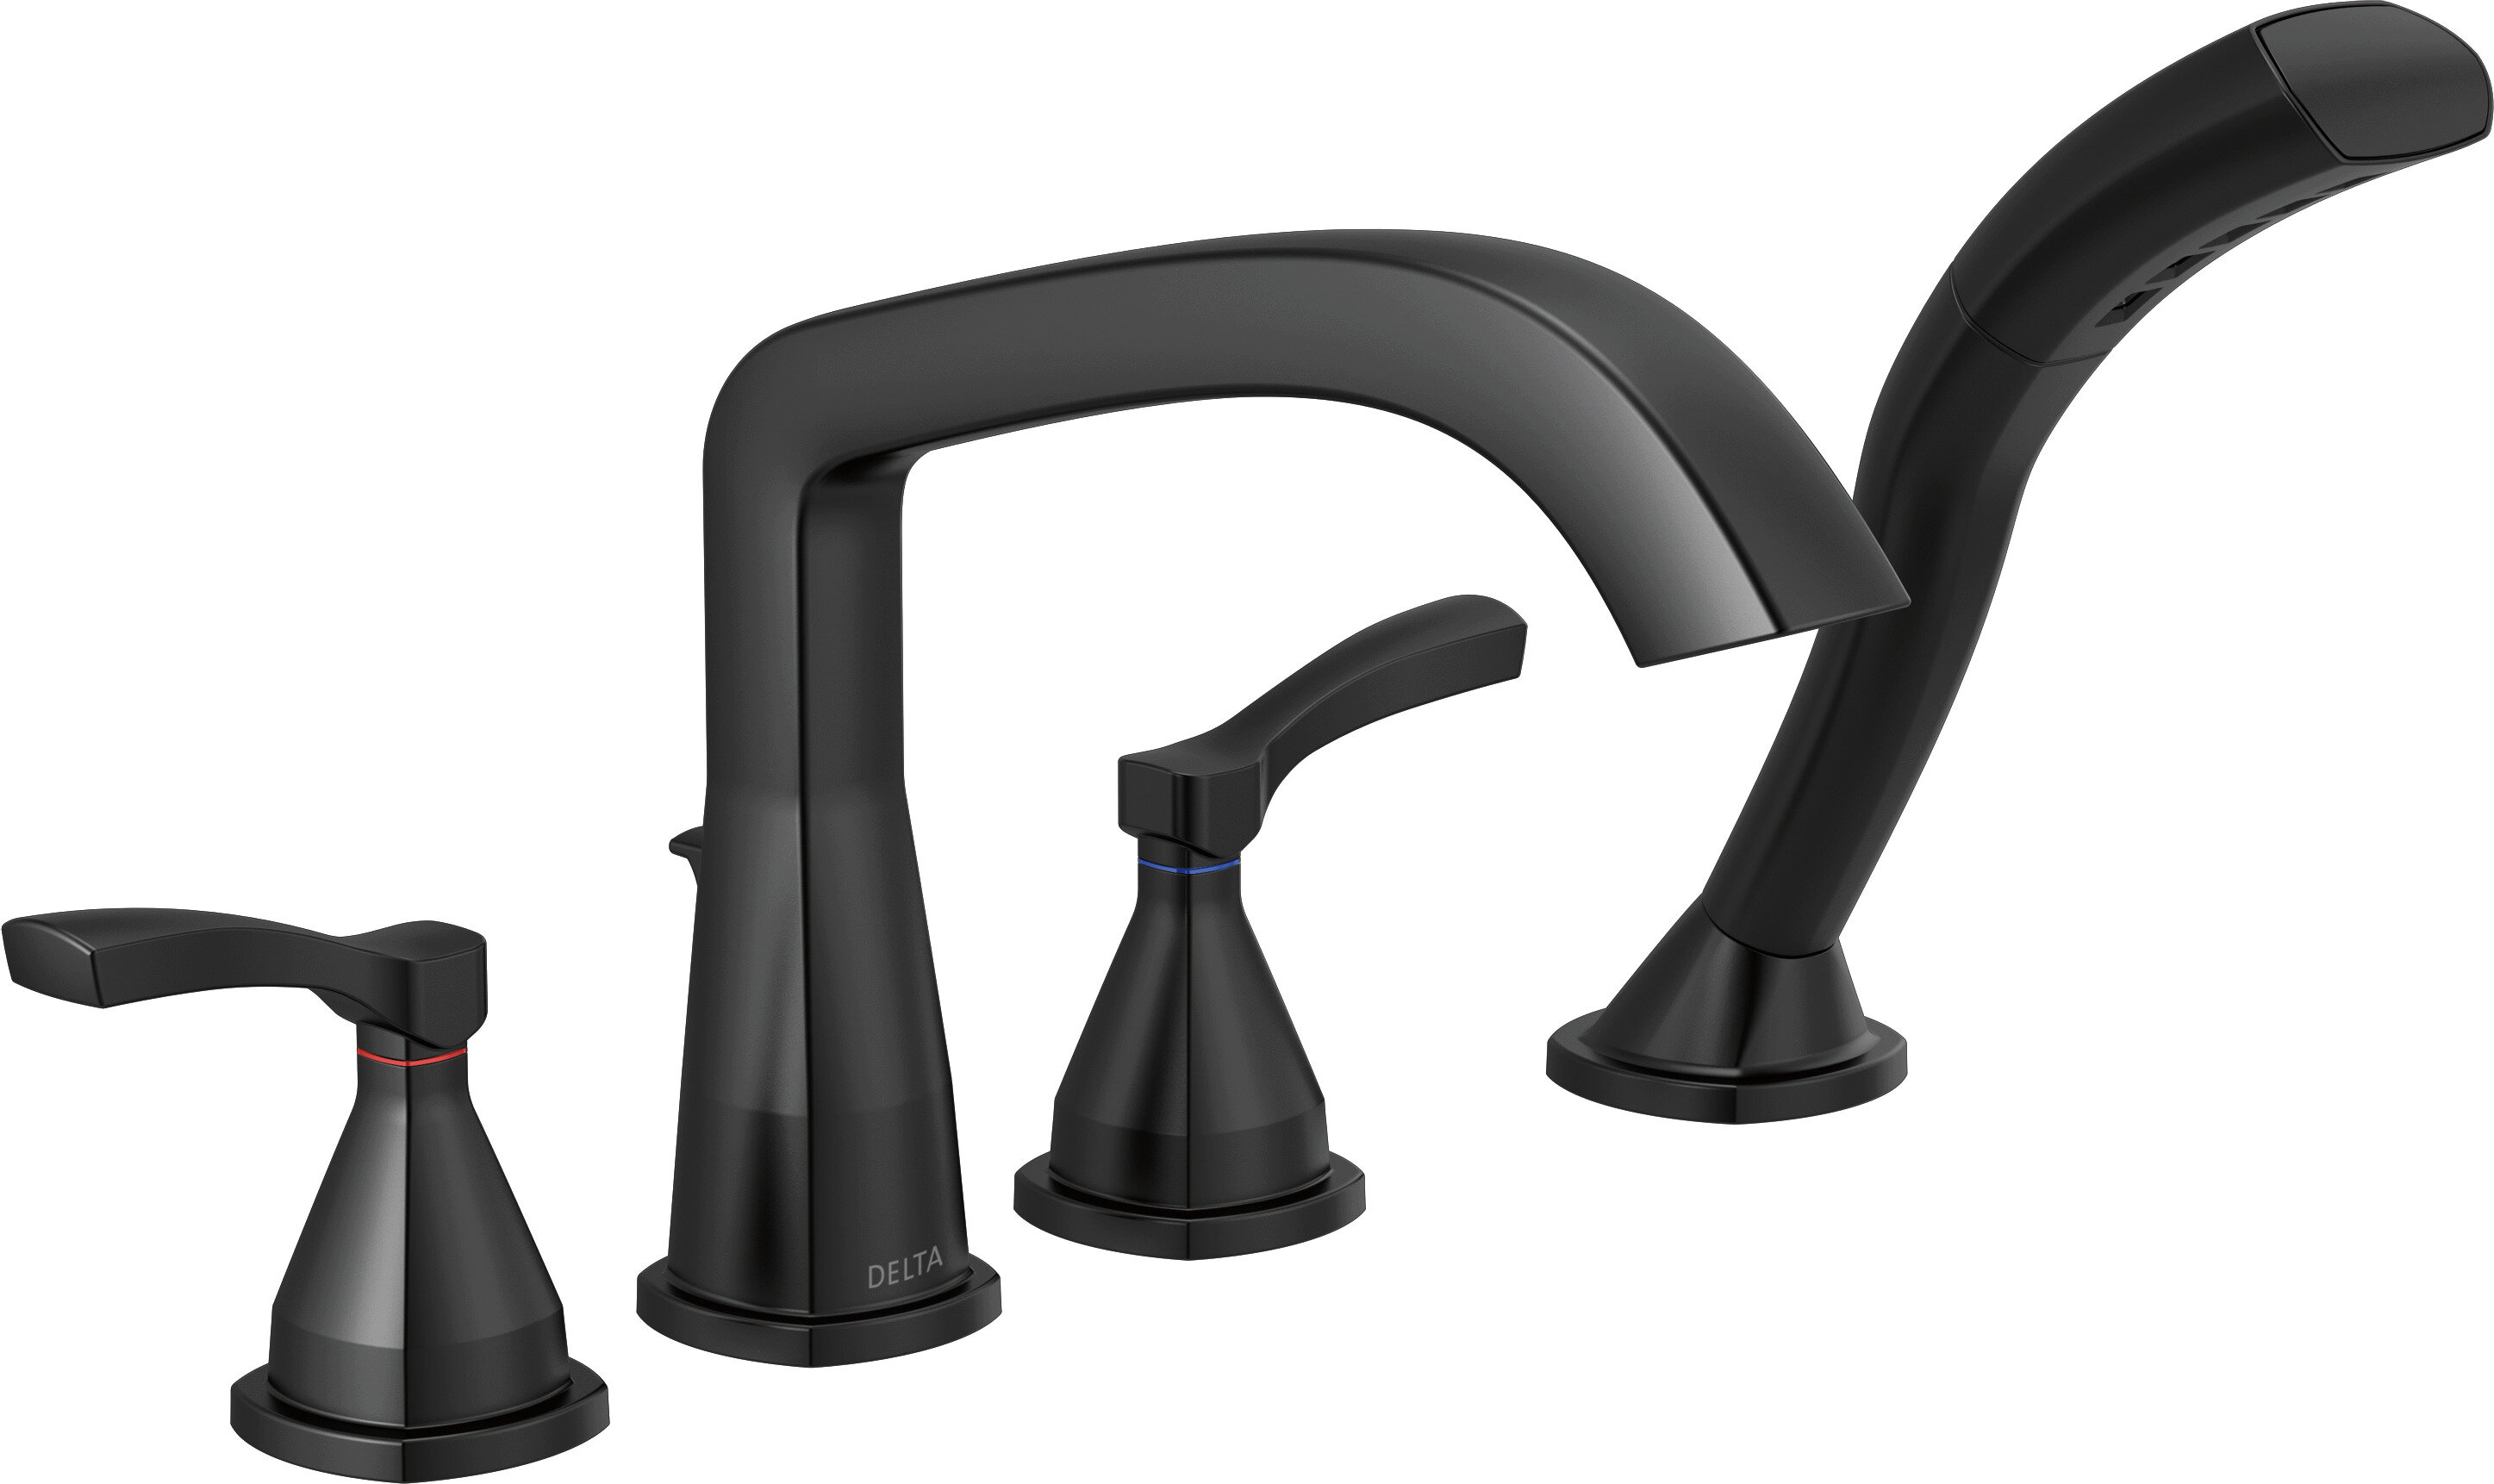 Stryke Four Hole Double Handle Deck Mounted Roman Tub Faucet Trim